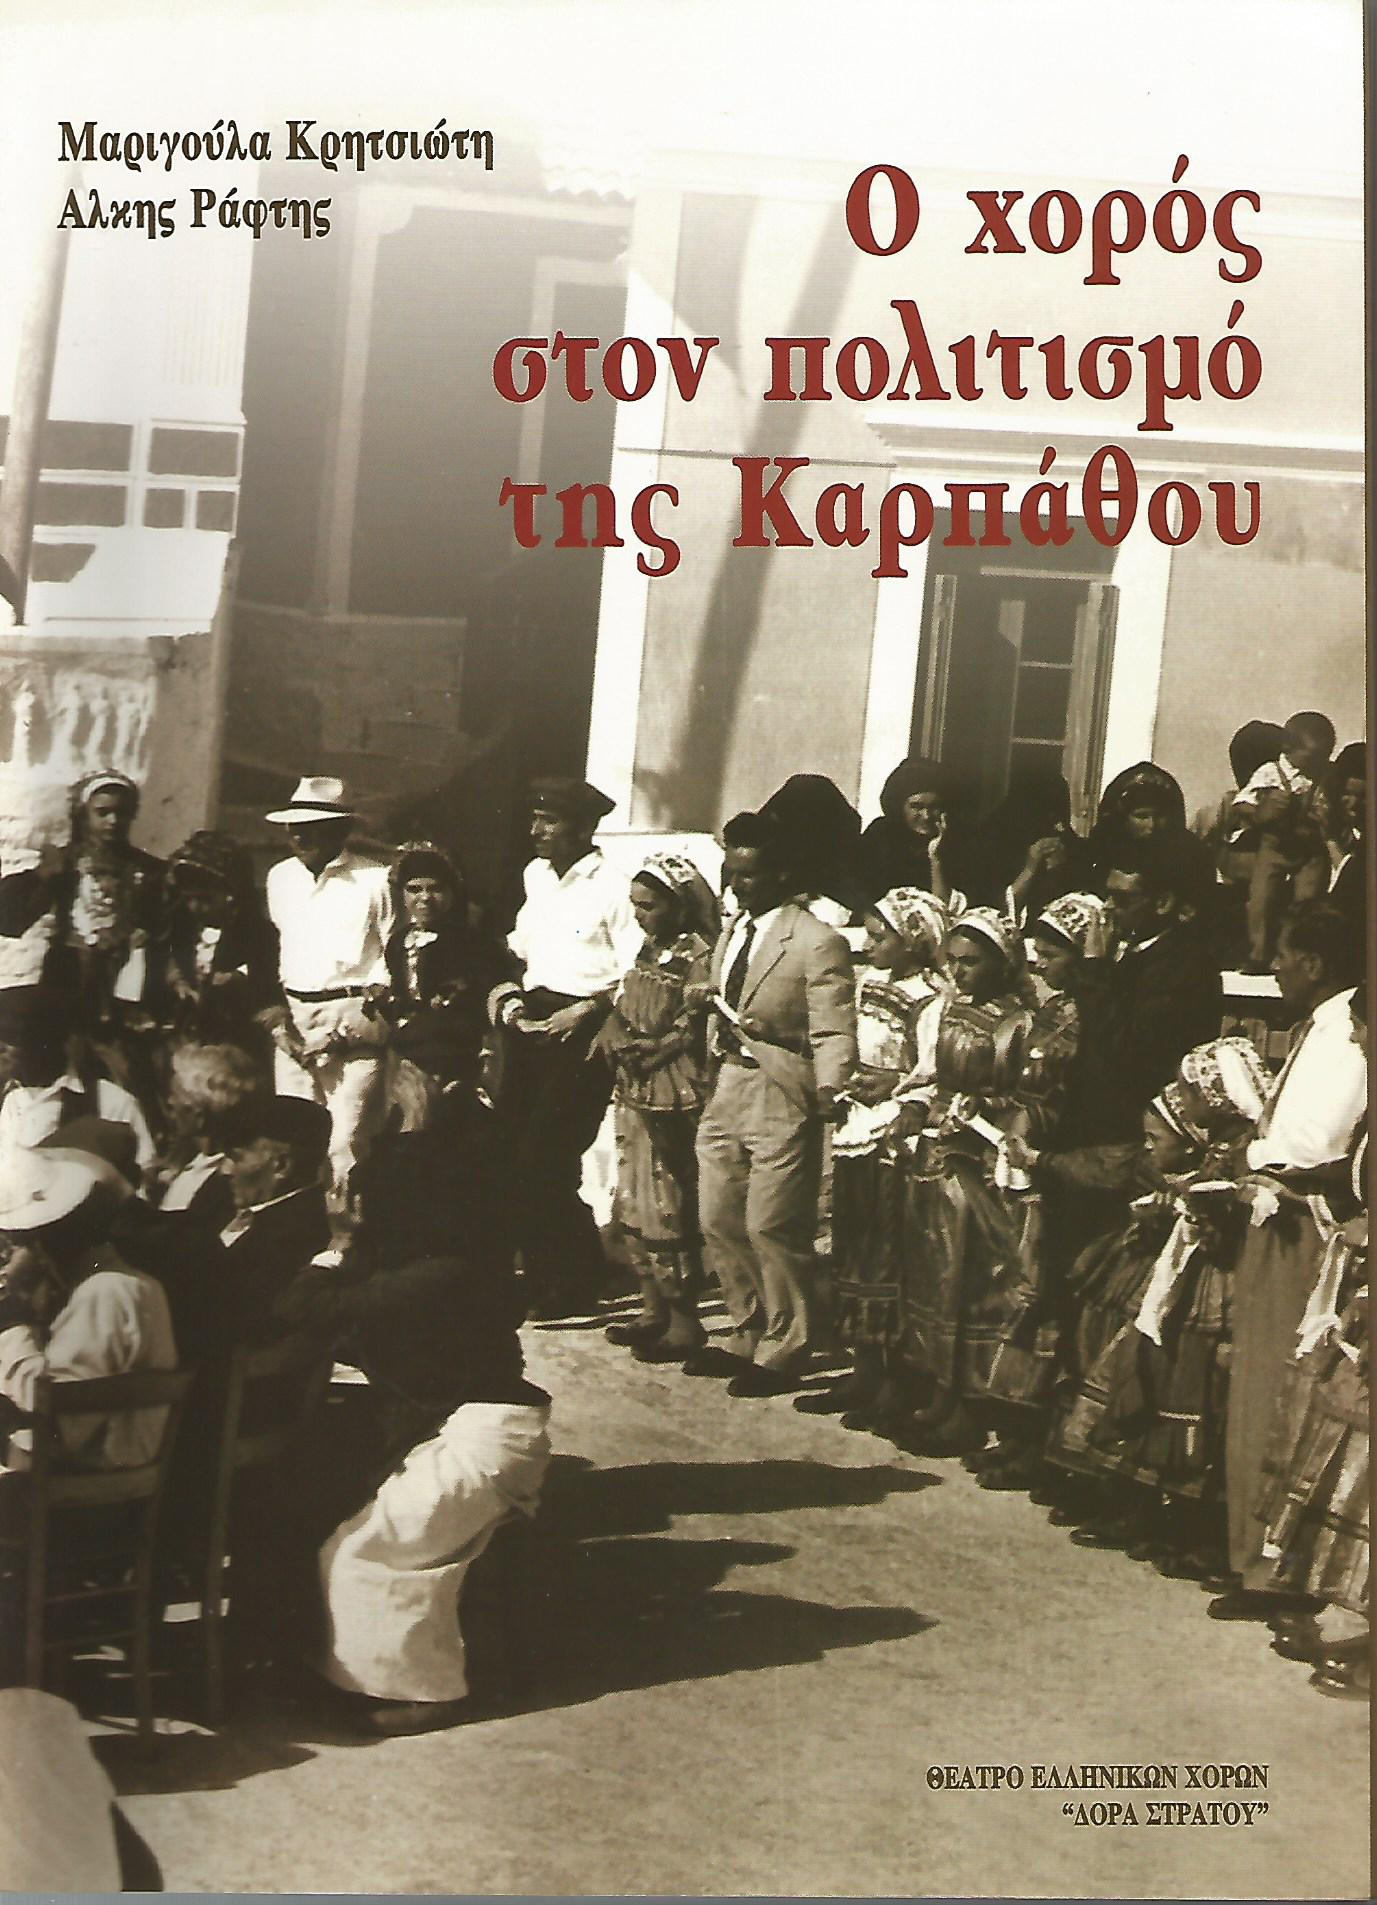 Dance in the culture of Karpathos